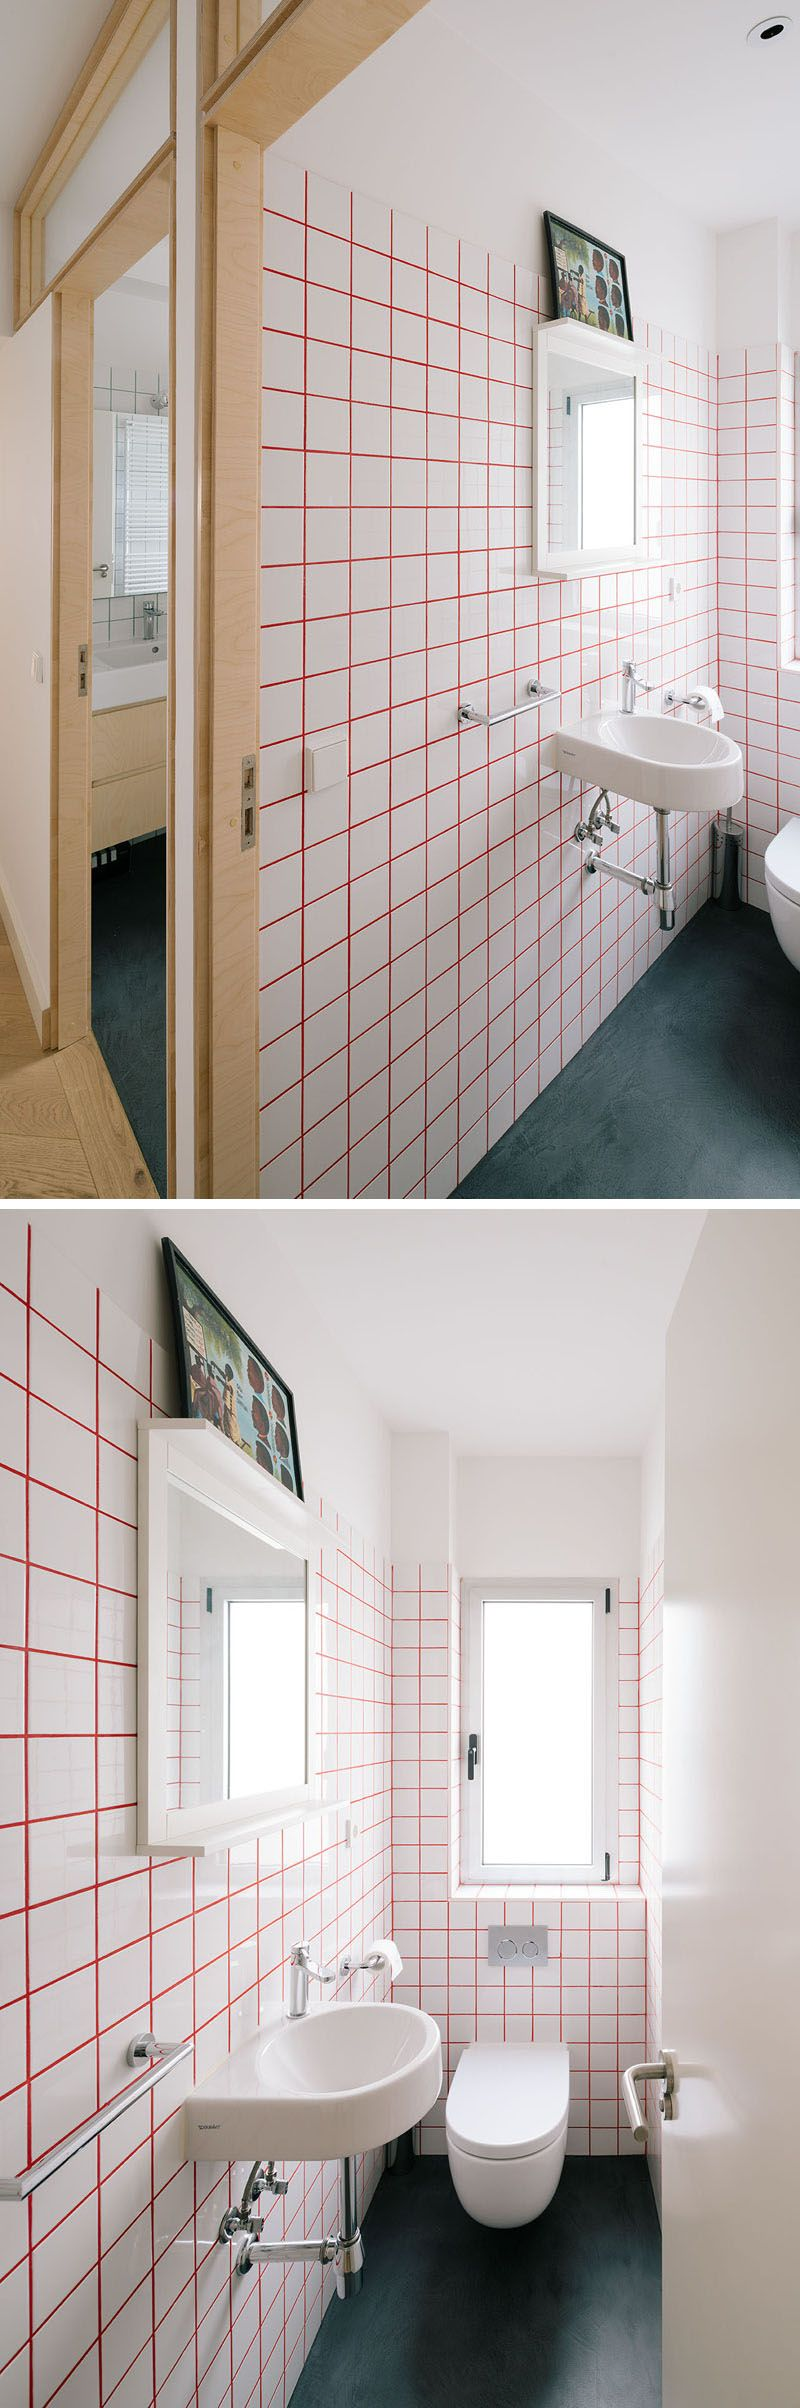 Bright red grout was used between square white tiles to brighten up ...